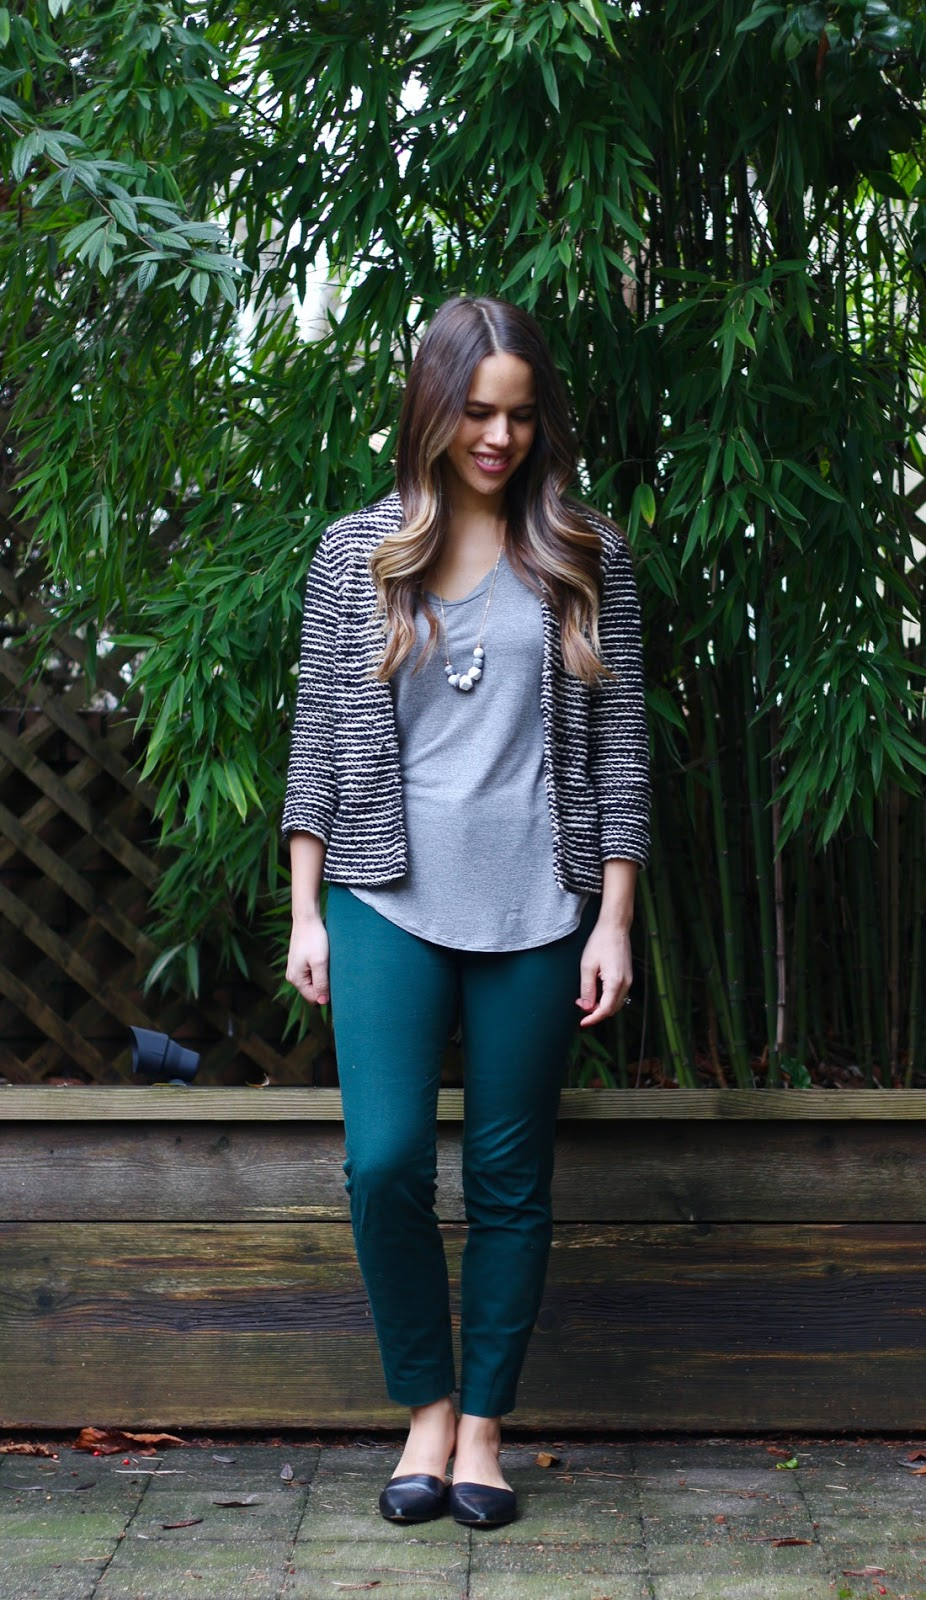 Jules in Flats - Tweed Striped Jacket Blazer with T-Shirt and Skinny Ankle Pants for Work (Business Casual Winter Workwear on a Budget)